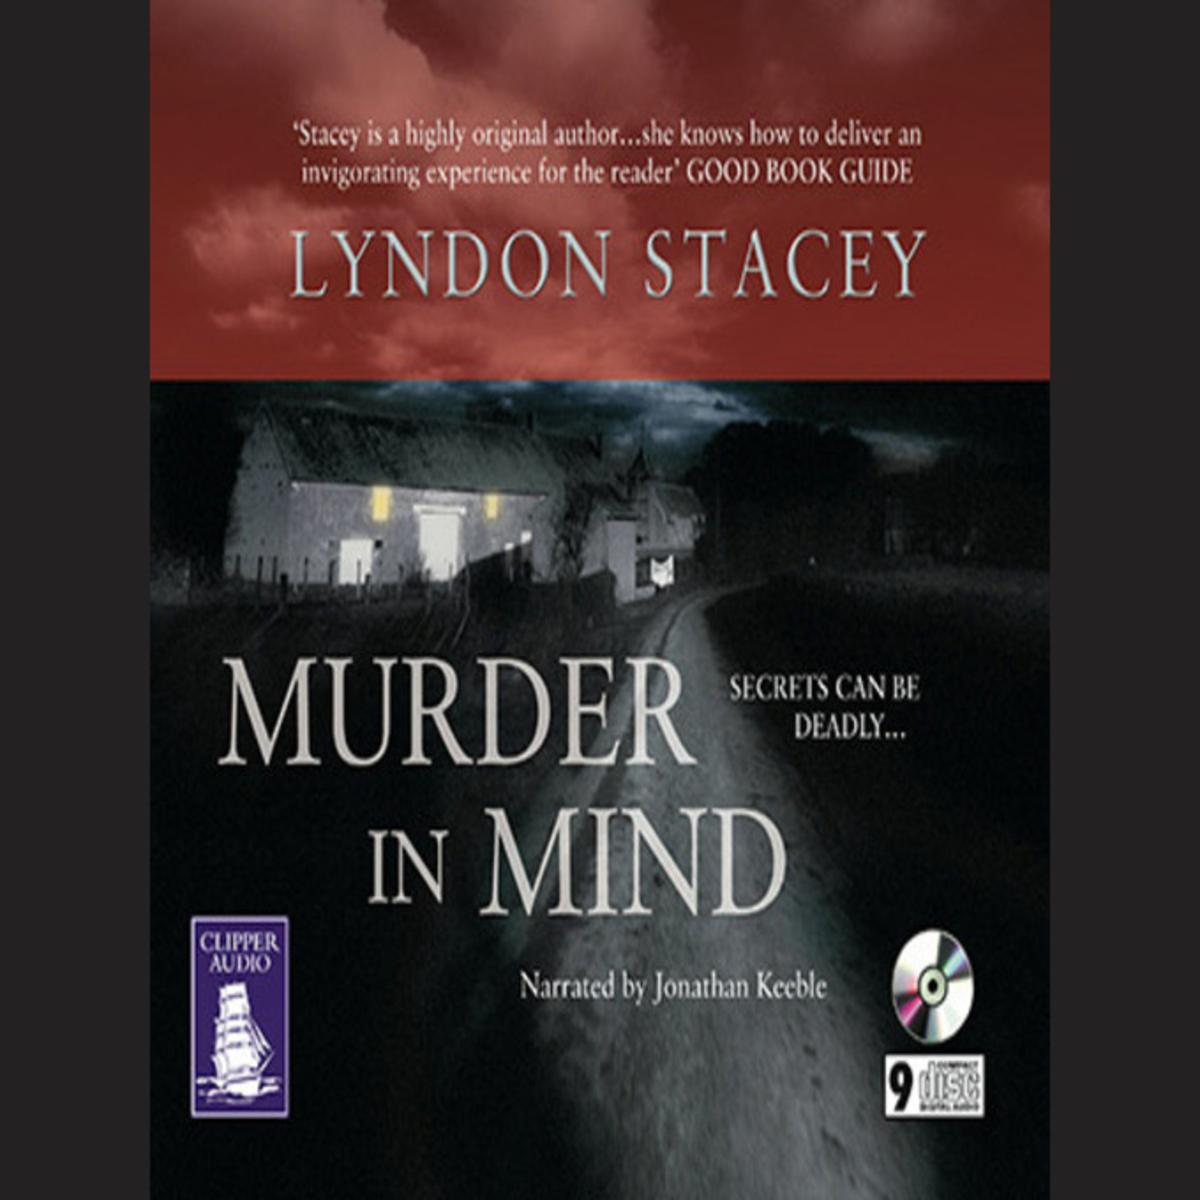 Murder in Mind - Audiobook